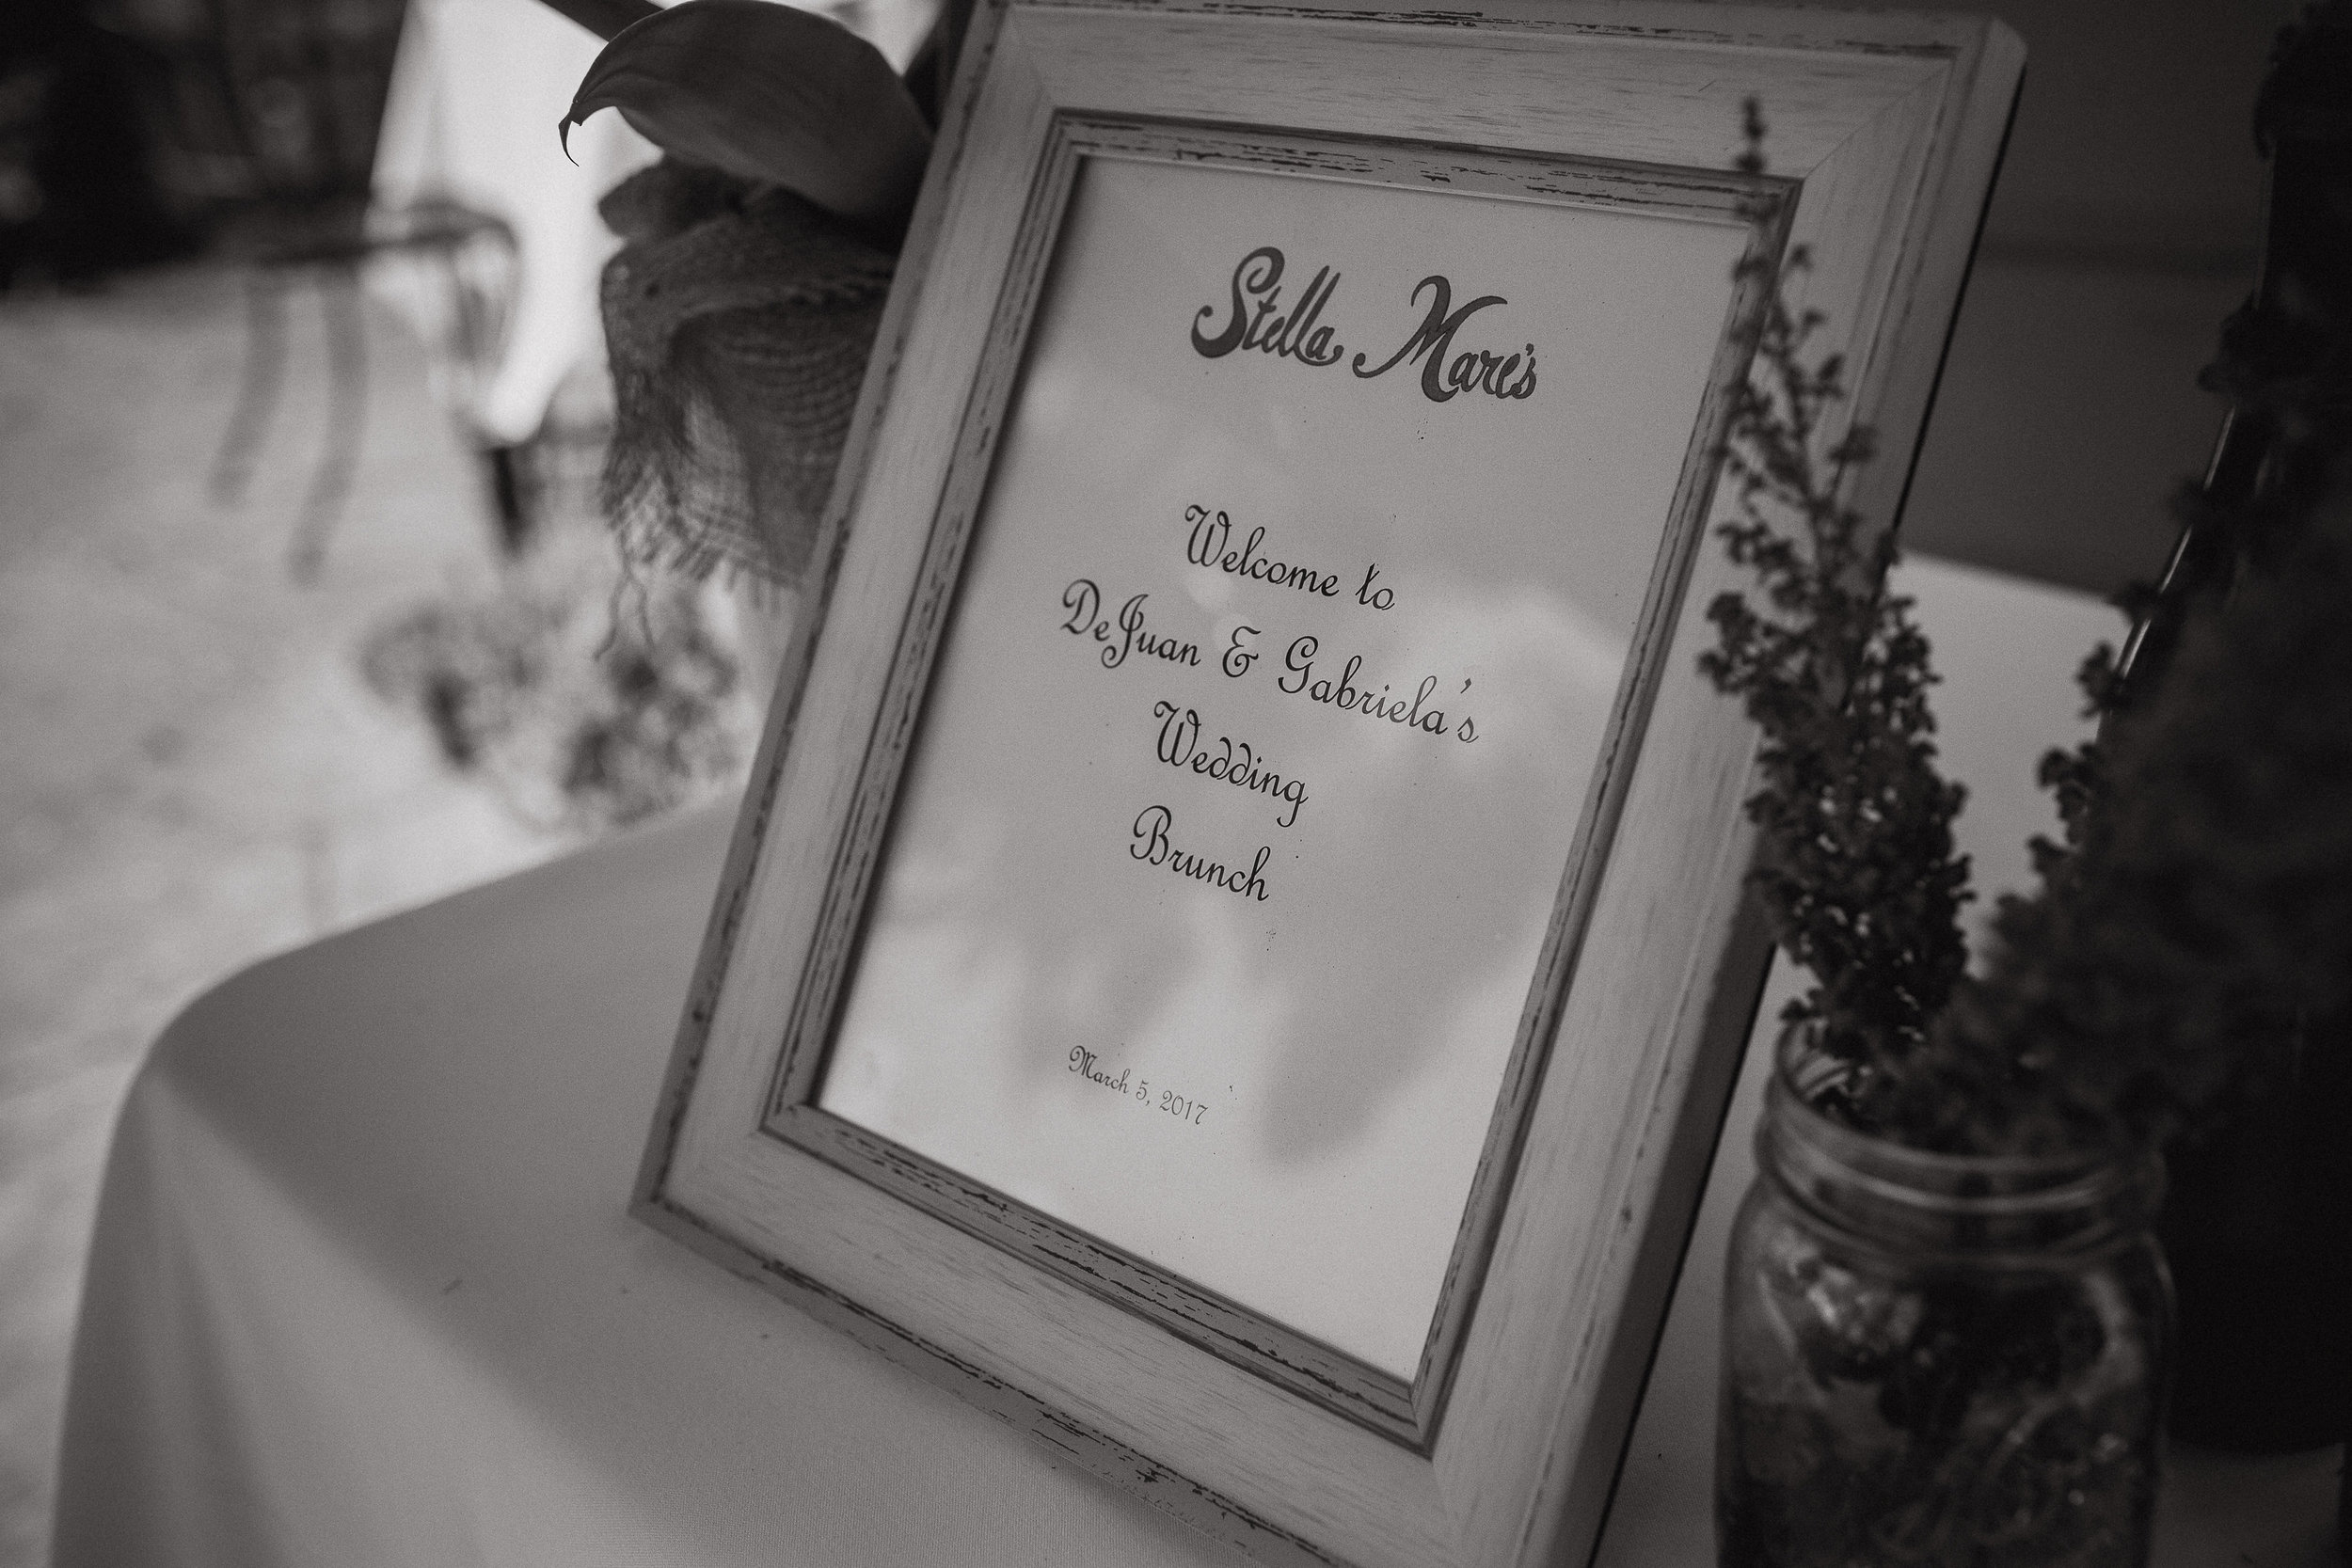 GabrielaandDeJuansantabarbaracourthouseweddingstellamaresweddingelopement-330.jpg